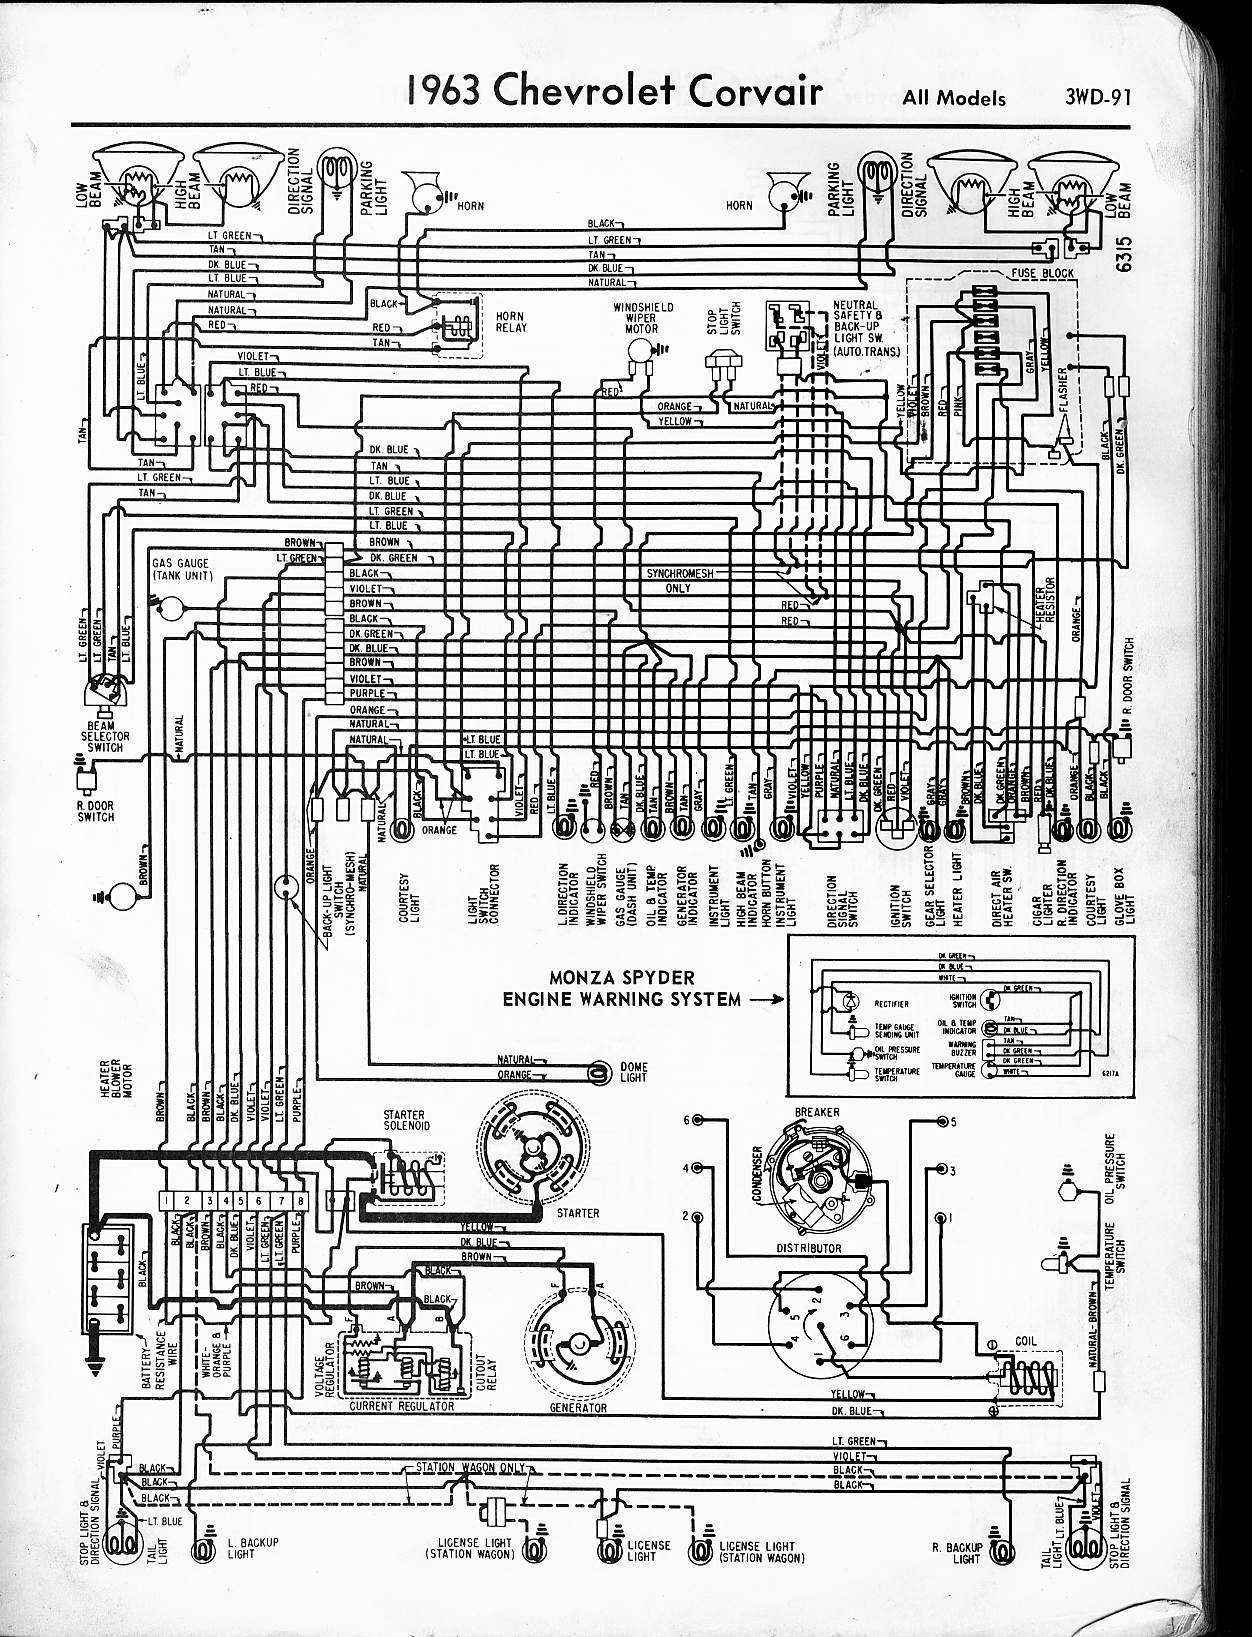 1963 Impala Horn Relay Diagram Product Wiring Diagrams How To Wire Chevy Online Schematic U2022 Rh Holyoak Co Ez It Works